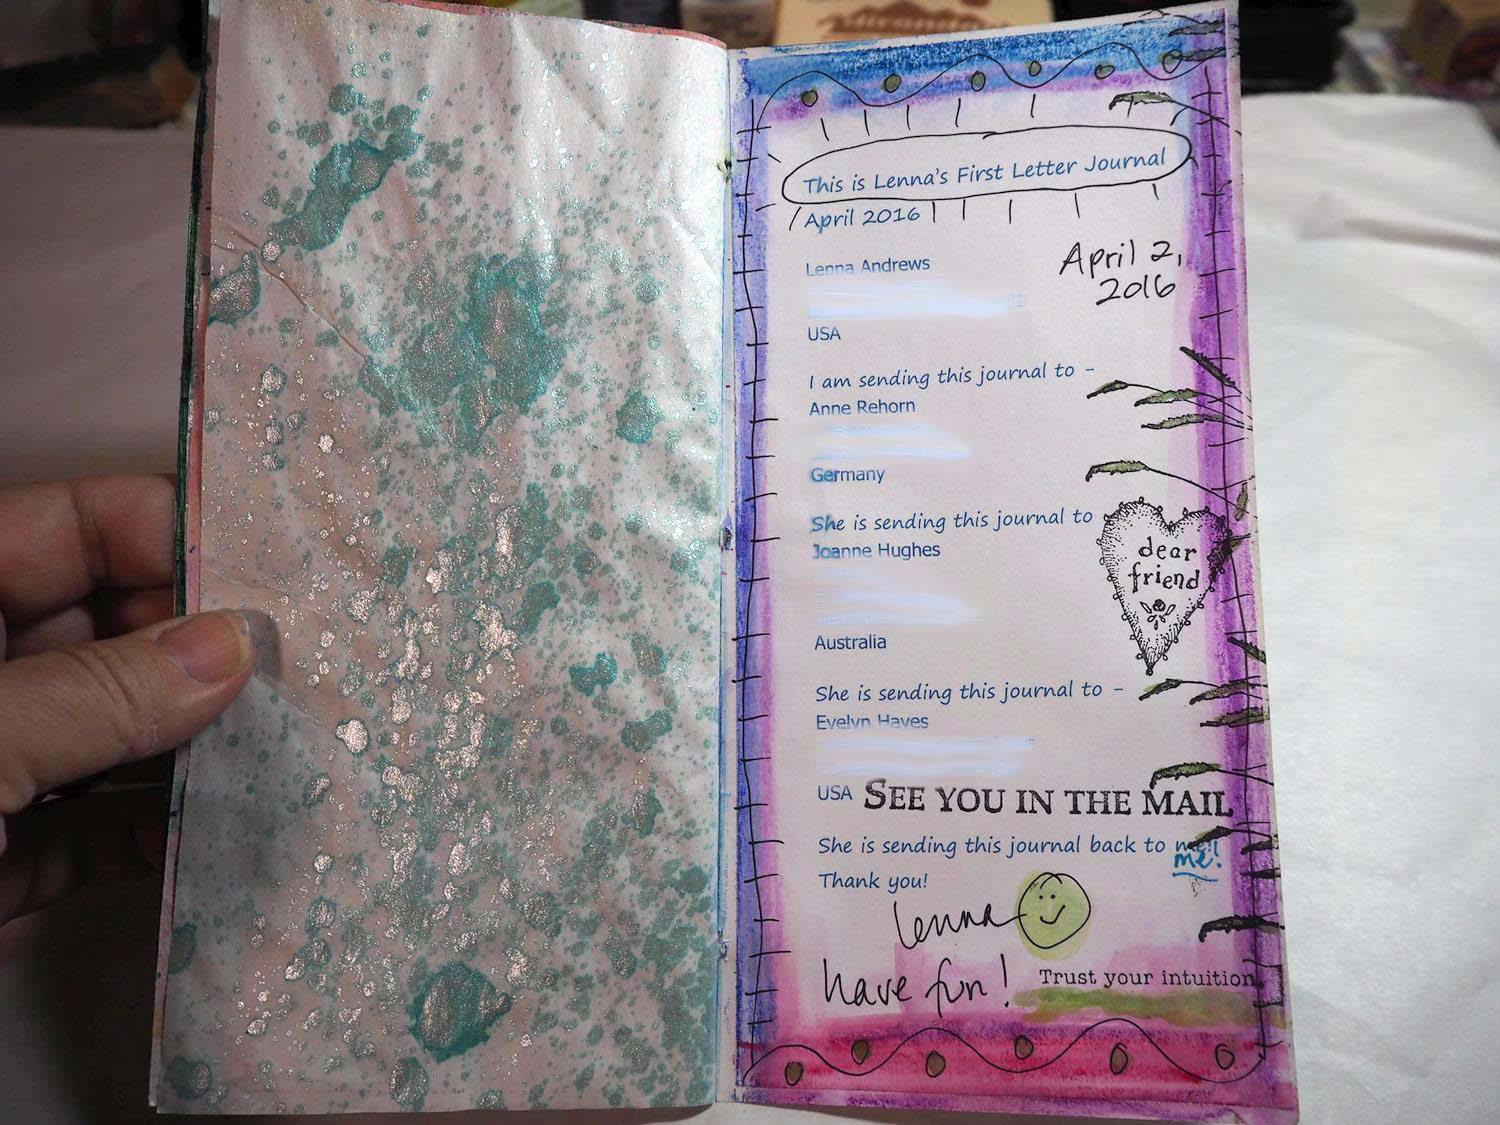 My First Letter Journal: April 2nd, 2016